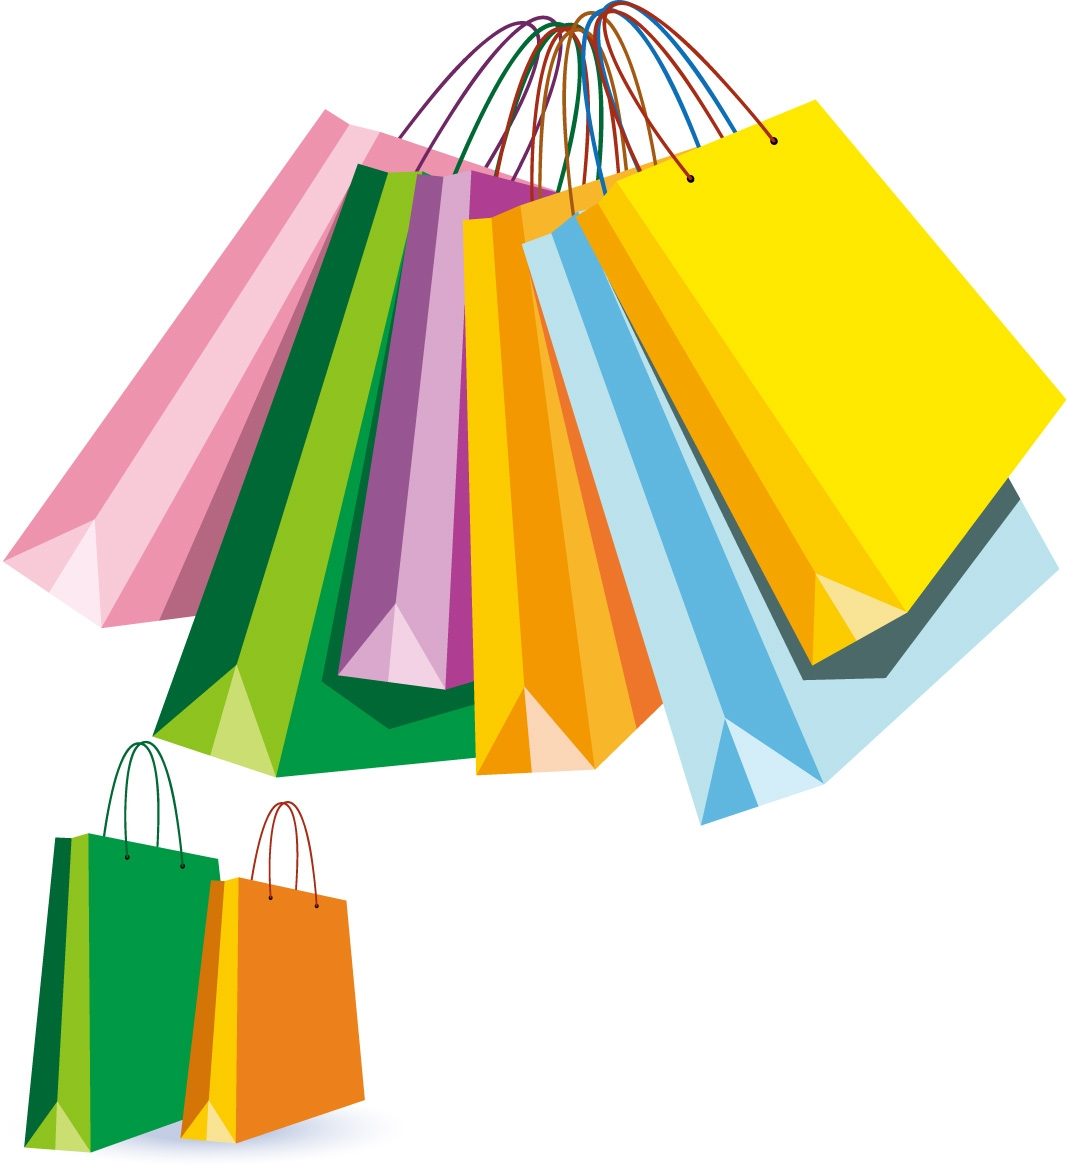 Bags clipart shooping. Unique shopping bag design